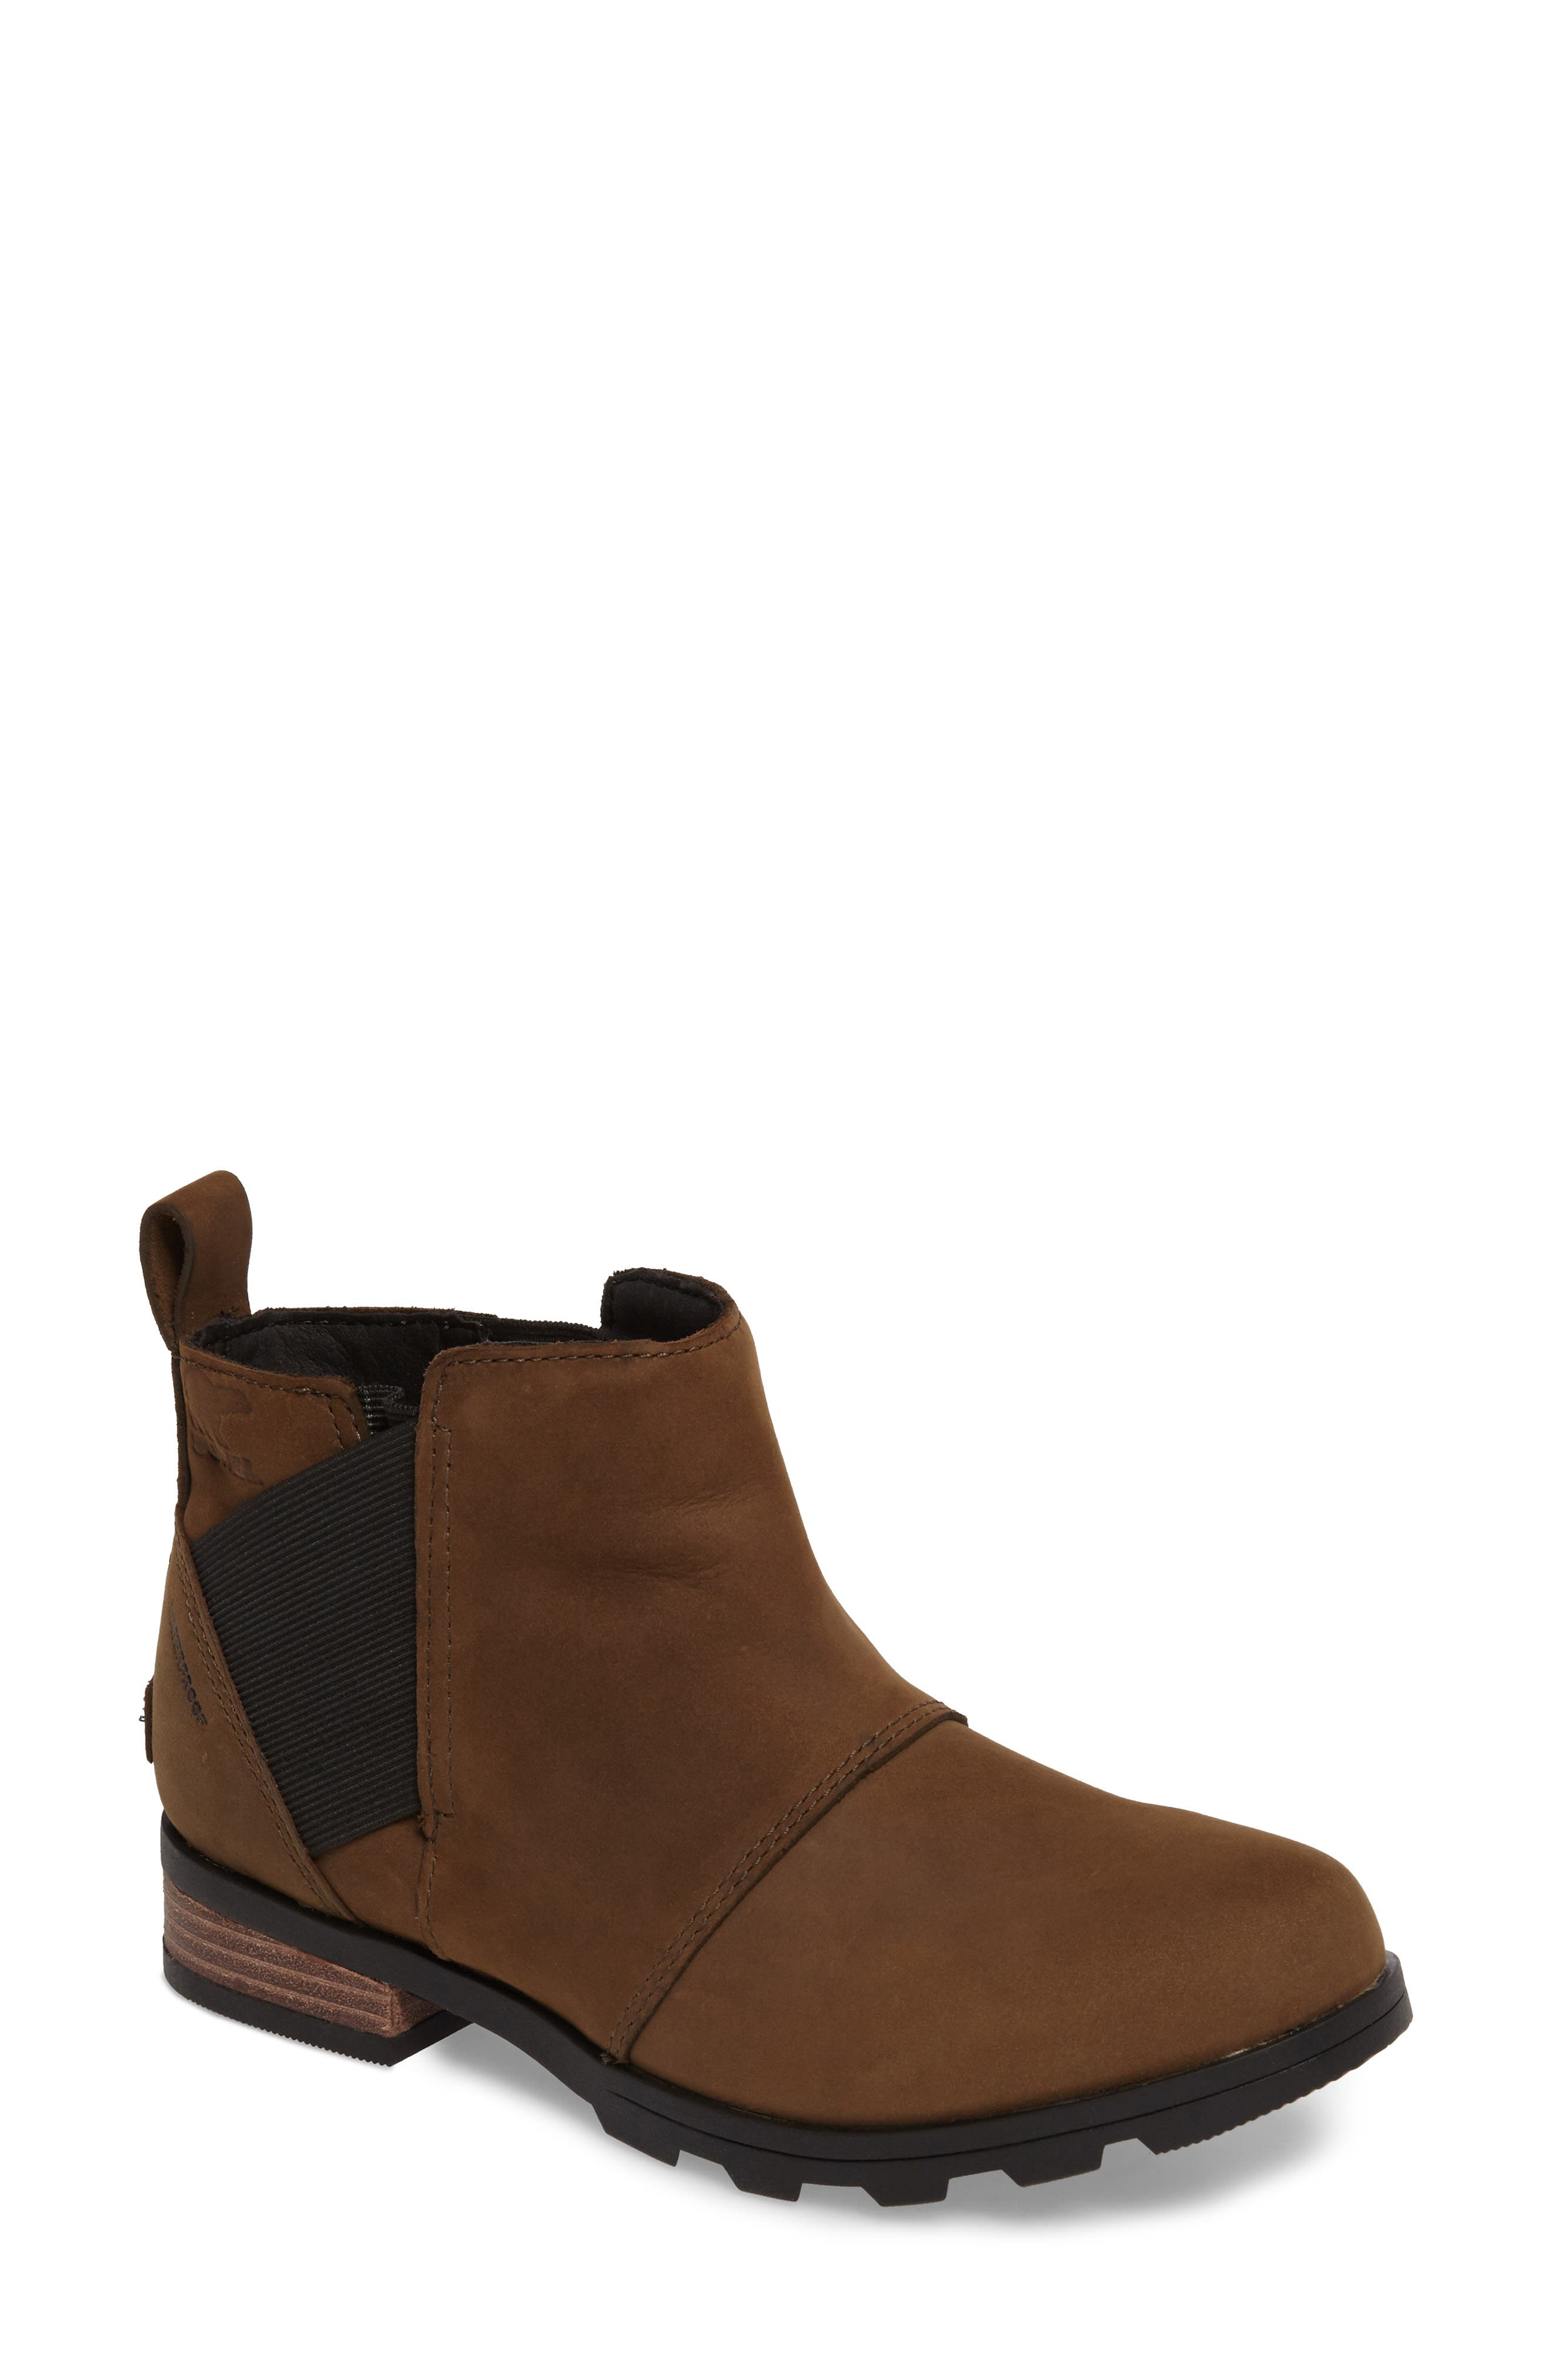 Alternate Image 1 Selected - Sorel Emelie Waterproof Chelsea Boot (Women)